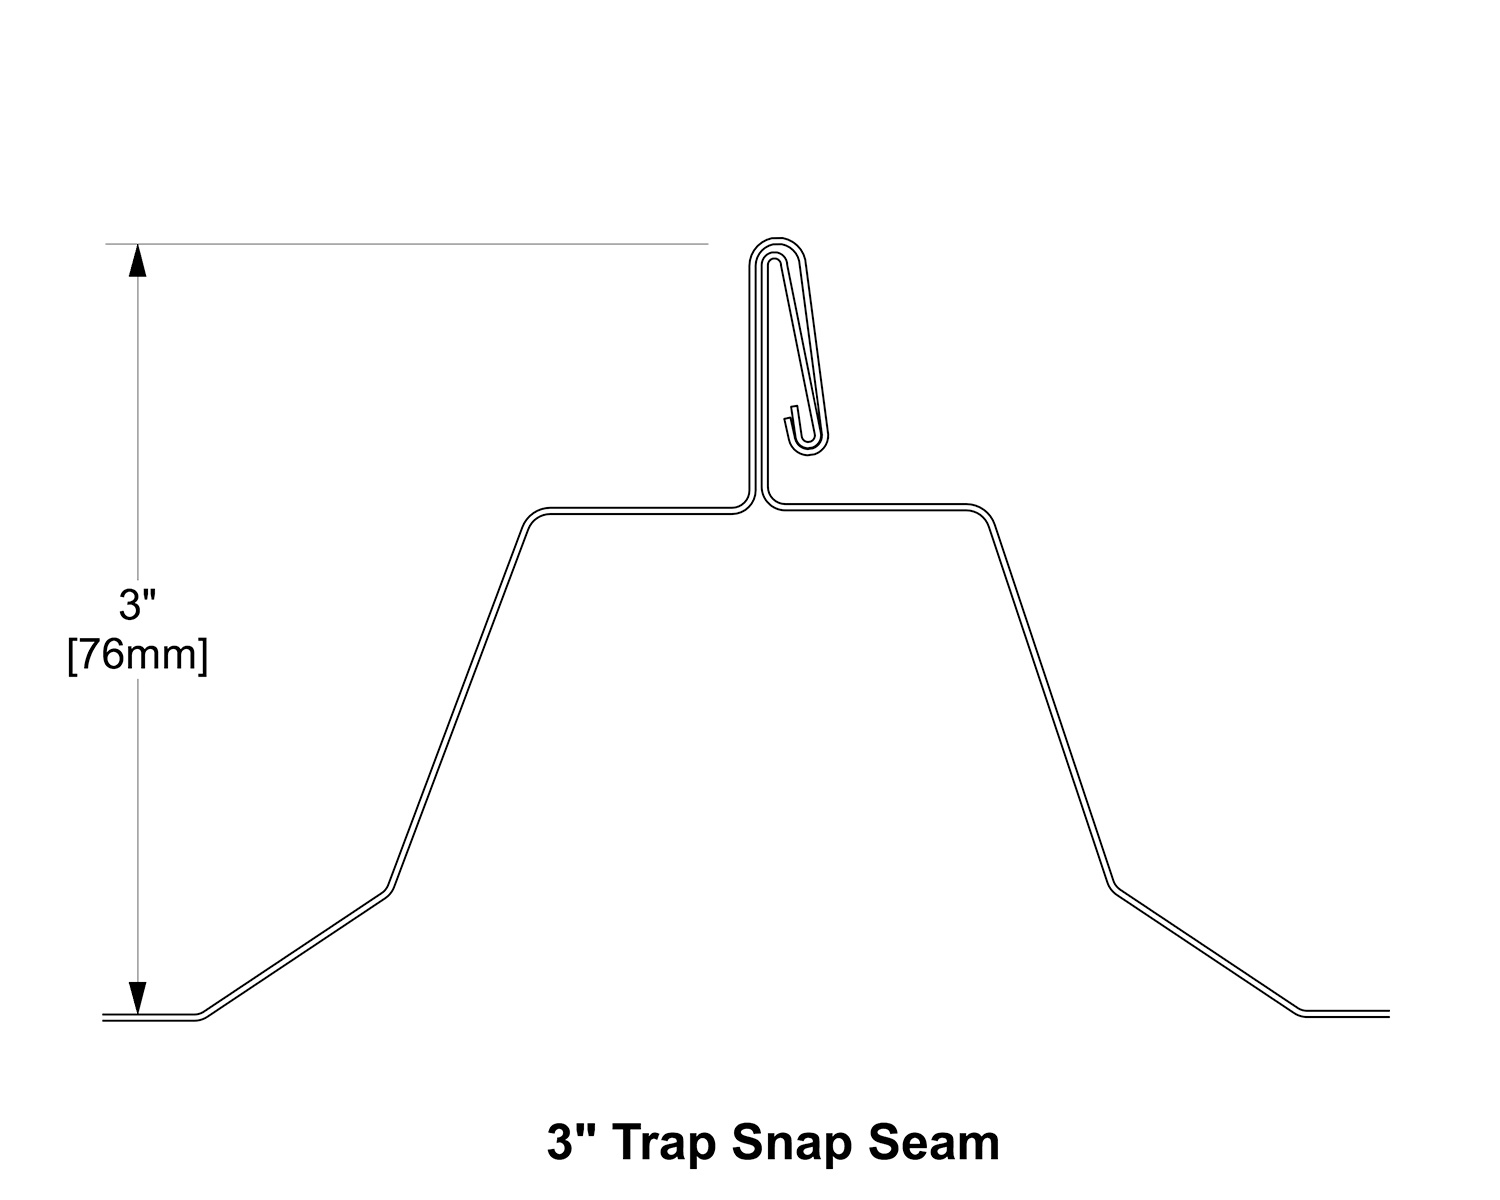 3 Trap Snap Seammetalroof